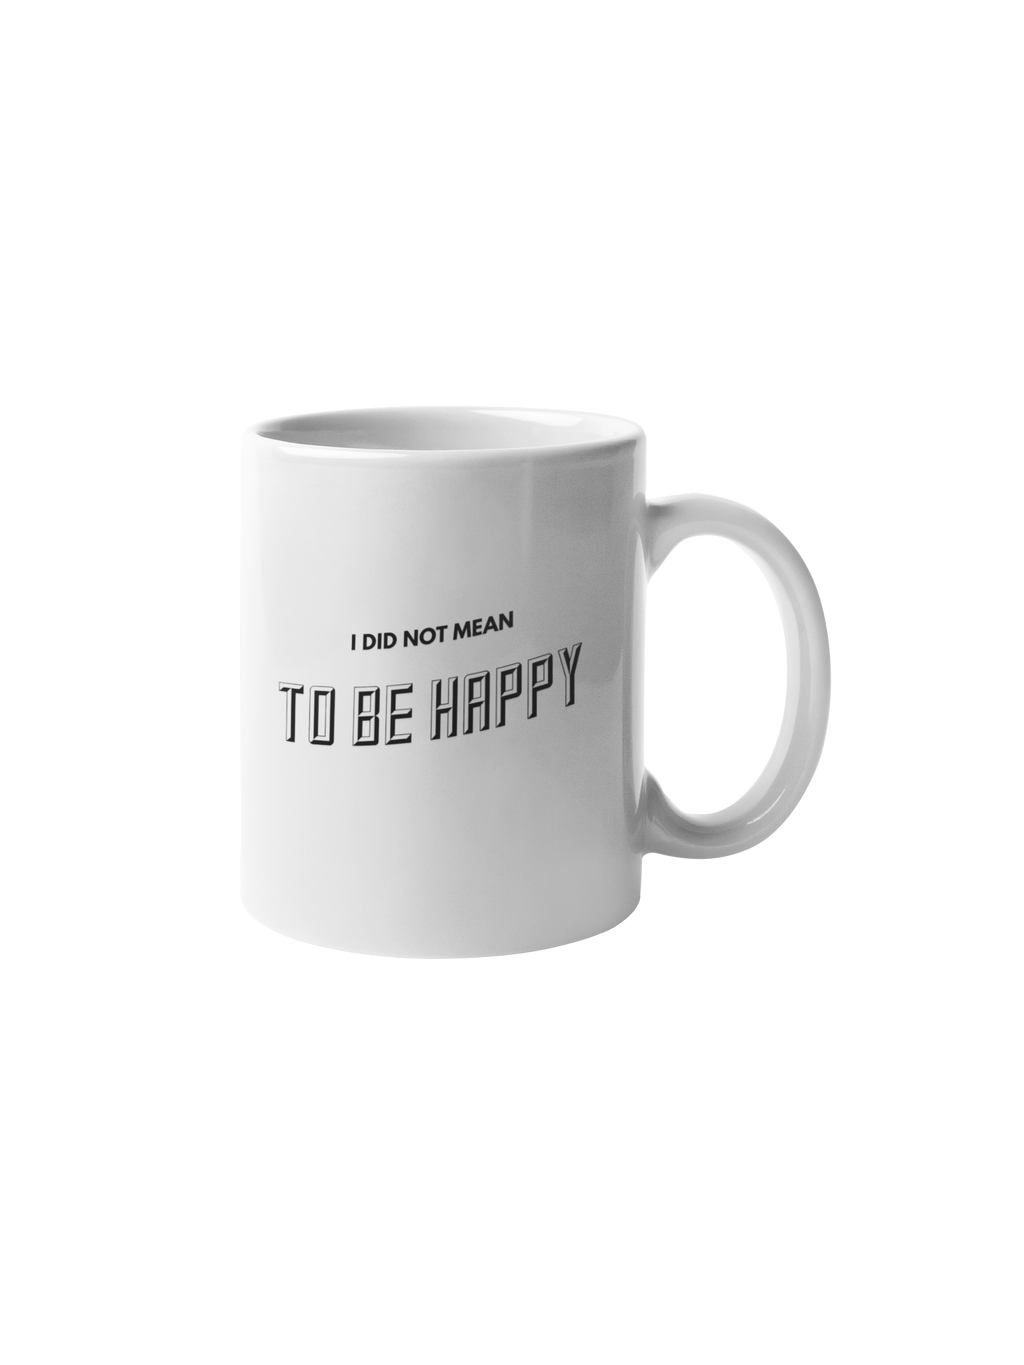 I Did Not Mean To Be Happy Original Mug Ceramic